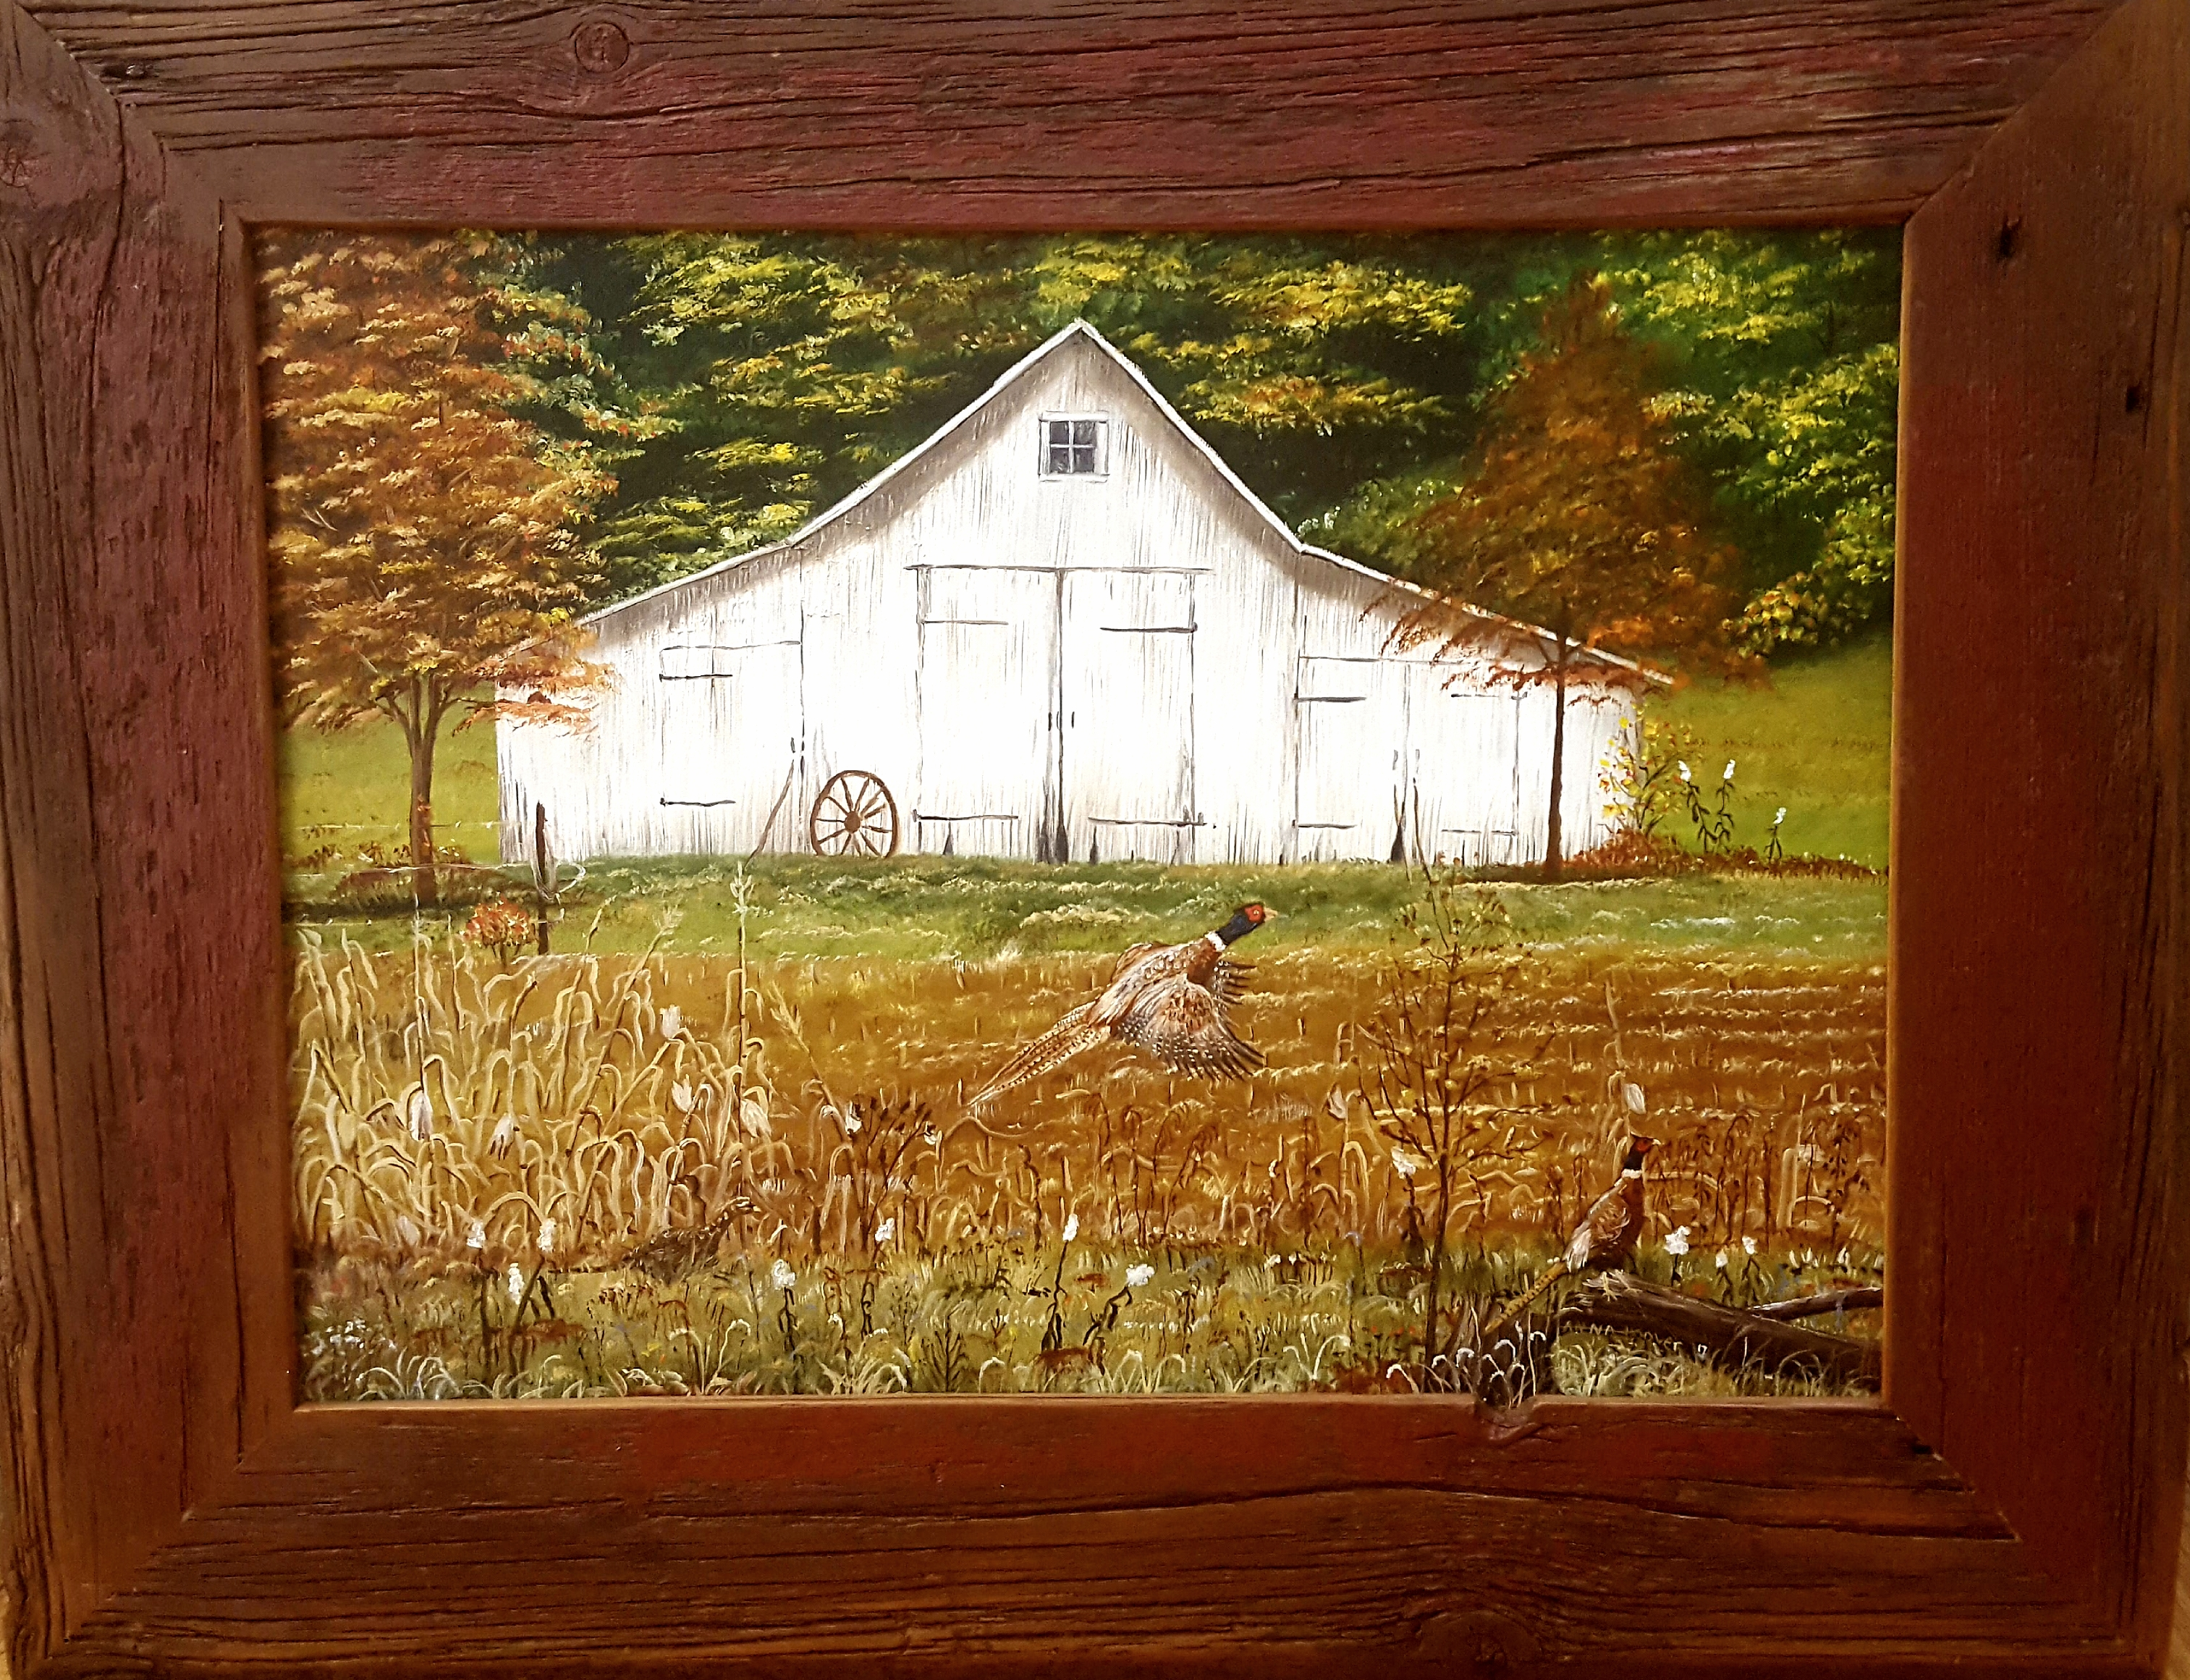 Barn and Pheasants